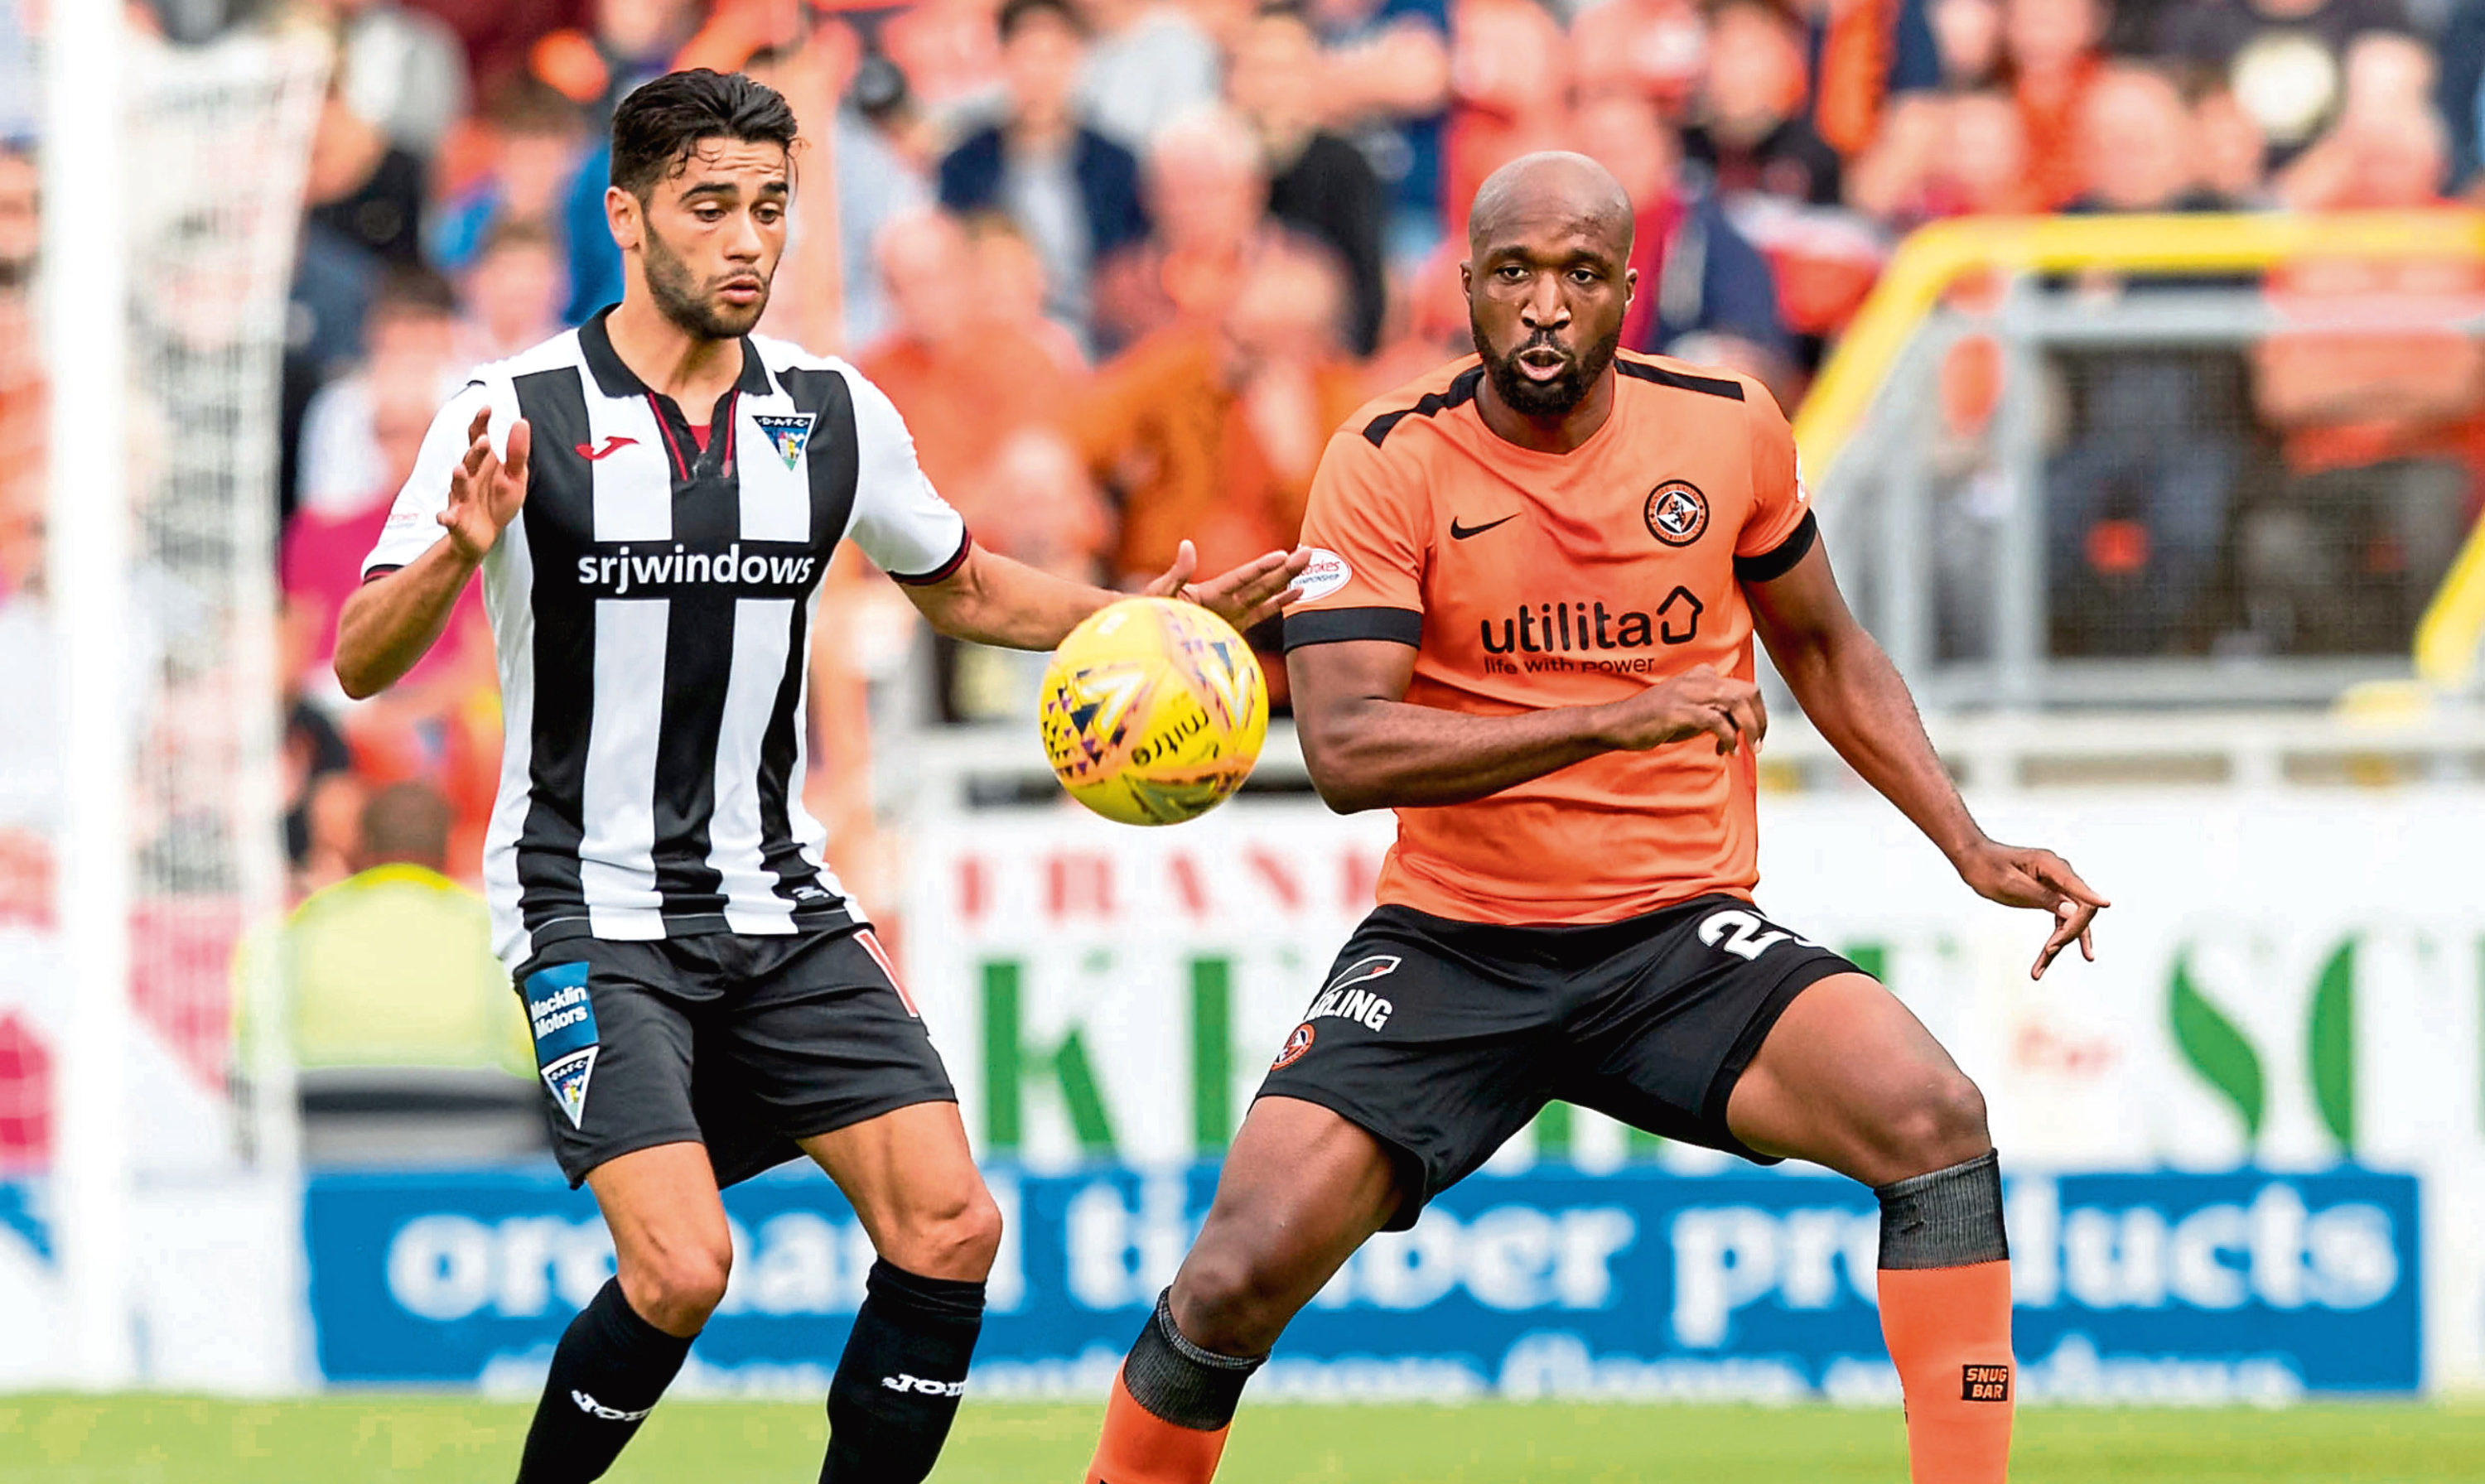 Dundee United's William Edjenguele (right) in action with Dunfermline's Faissal El Bakhtaoui